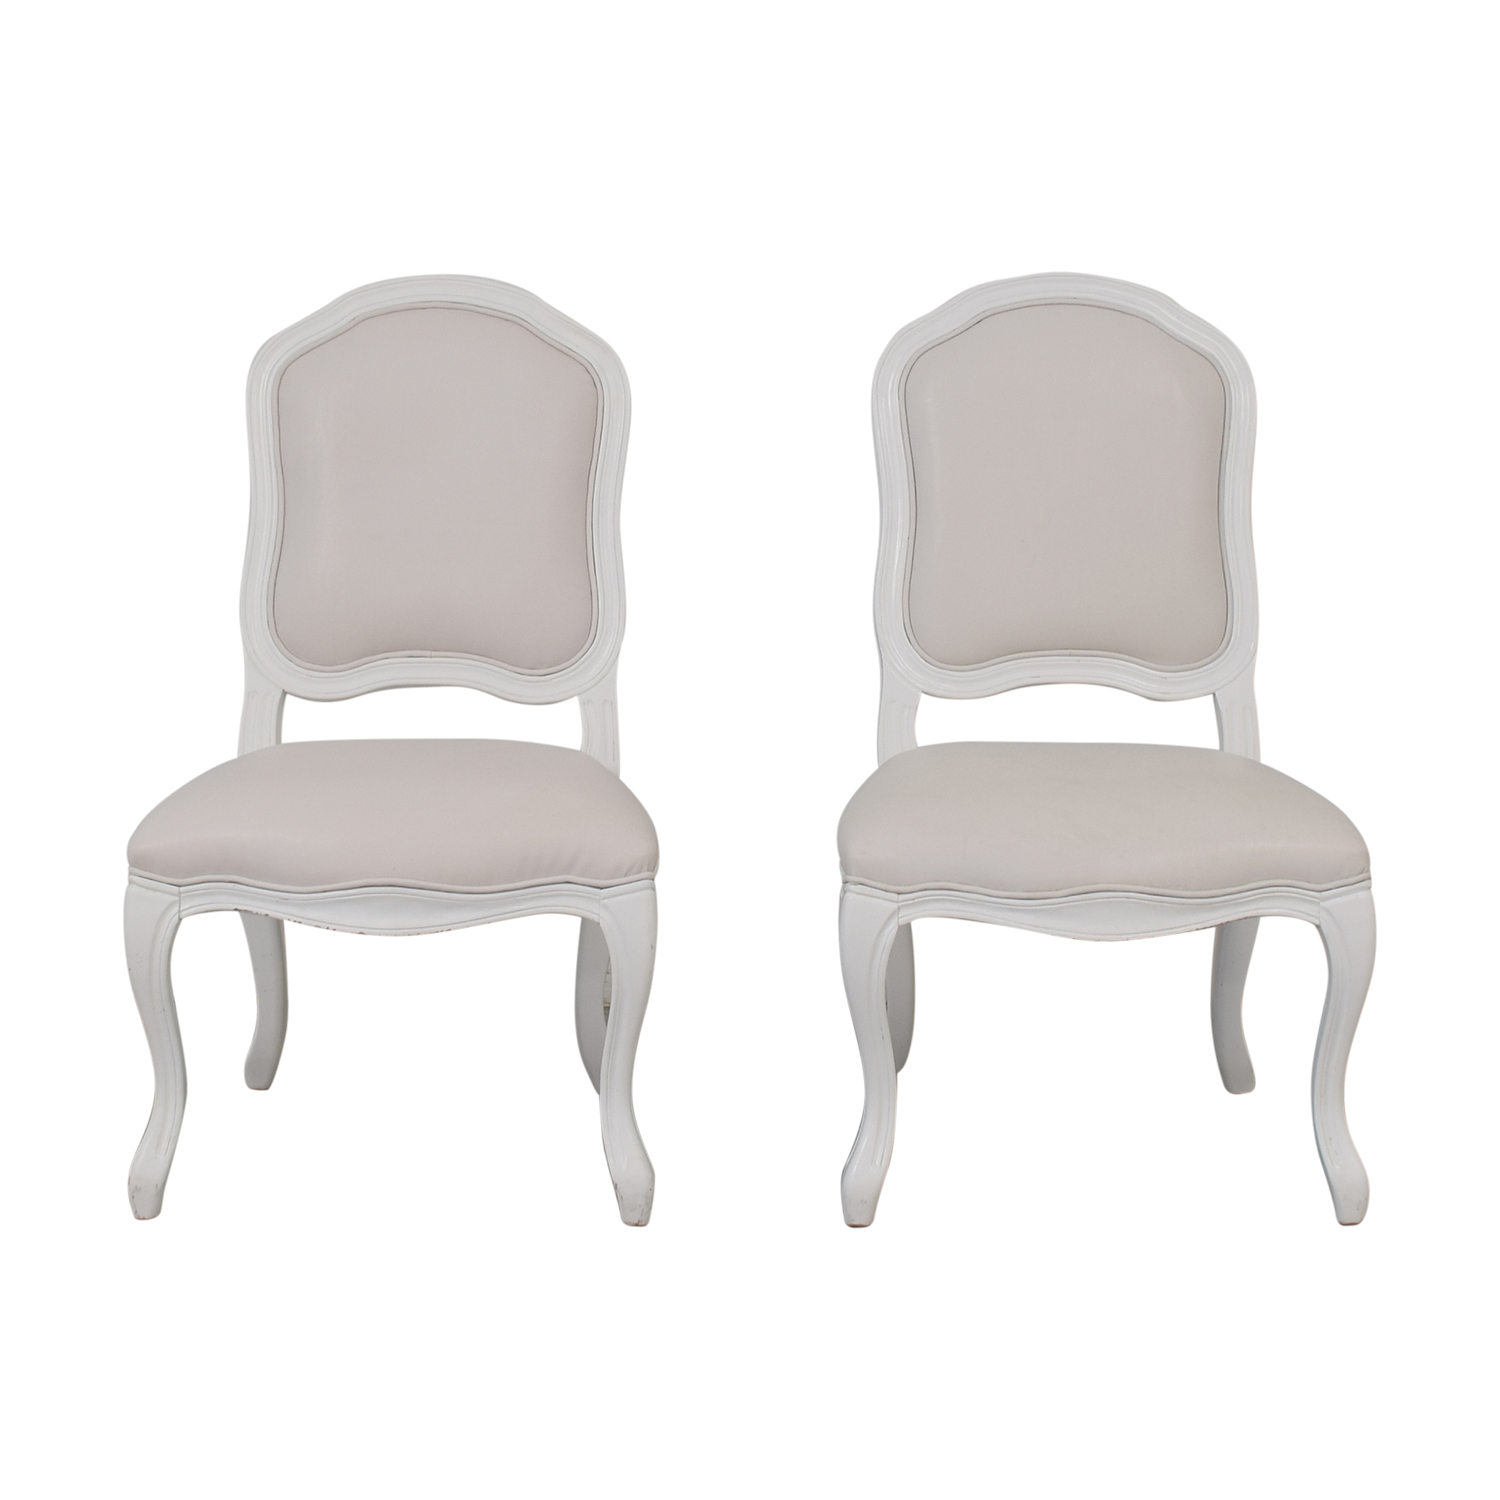 CB2 CB2 Stick Around Side Chairs dimensions